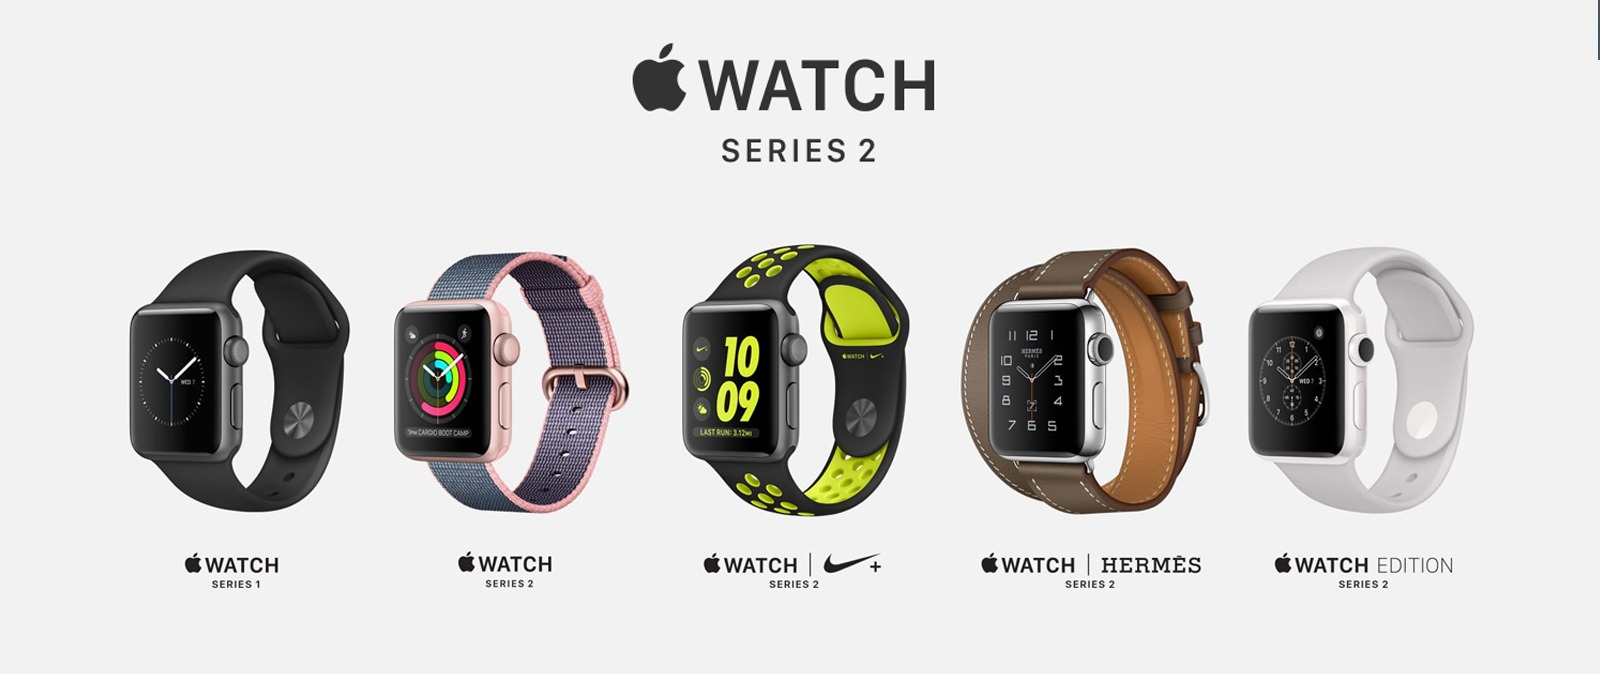 Apple Watch Series 2 se renueva enfocándose en el deporte